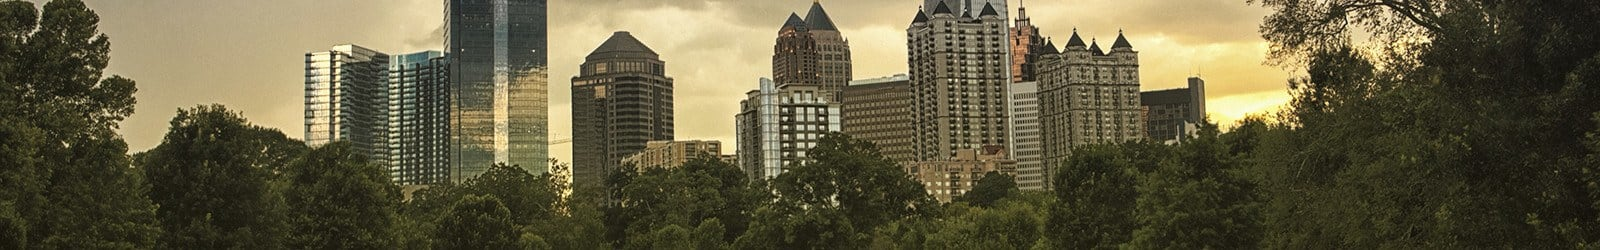 Affordable 1 2 bedroom apartments in atlanta ga - Cheap 1 bedroom apartments in atlanta ...